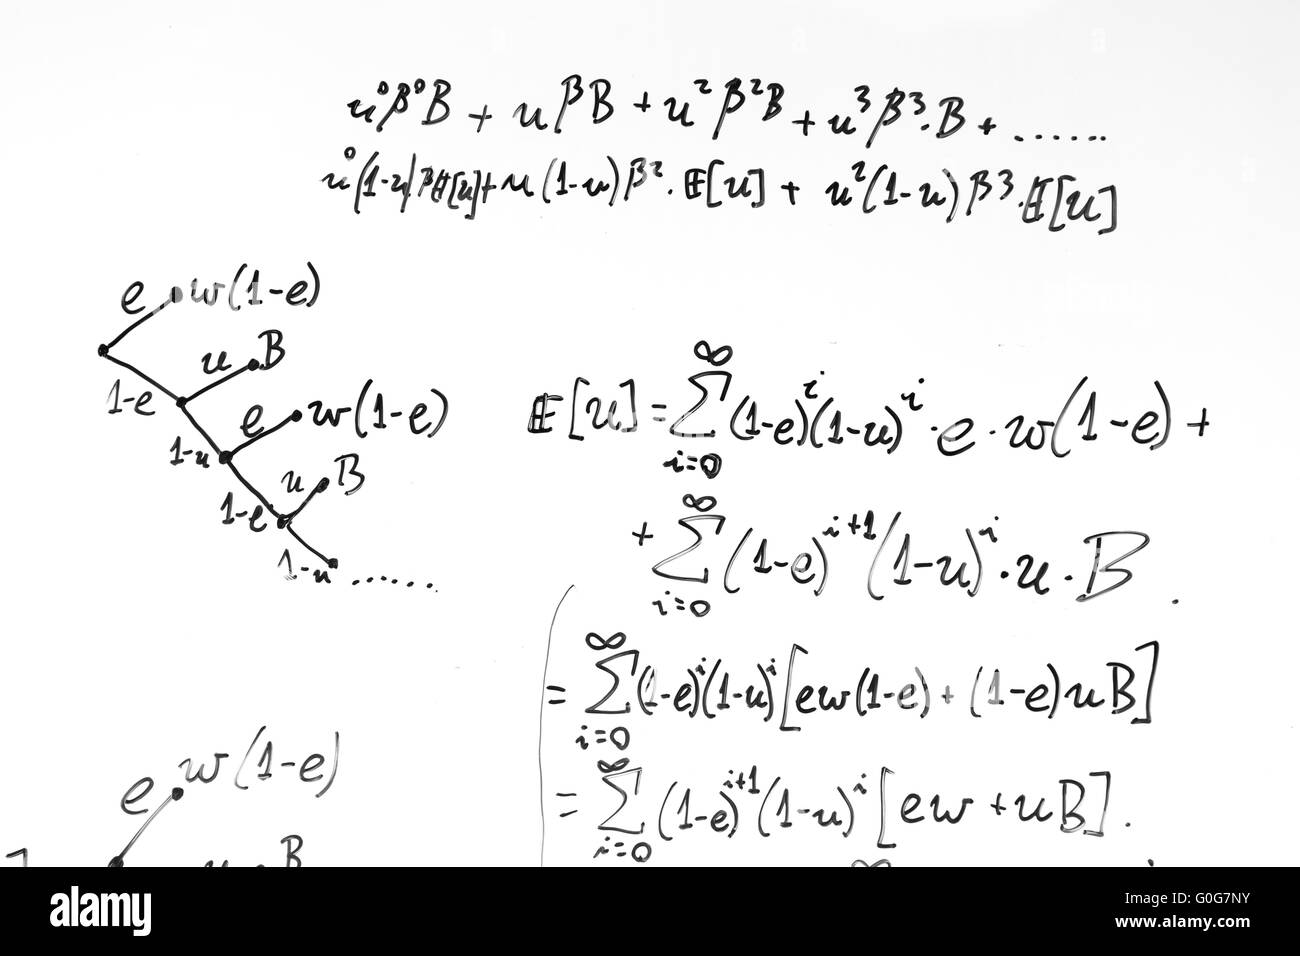 Complex math formulas on whiteboard mathematics and science with complex math formulas on whiteboard mathematics and science with economics buycottarizona Images